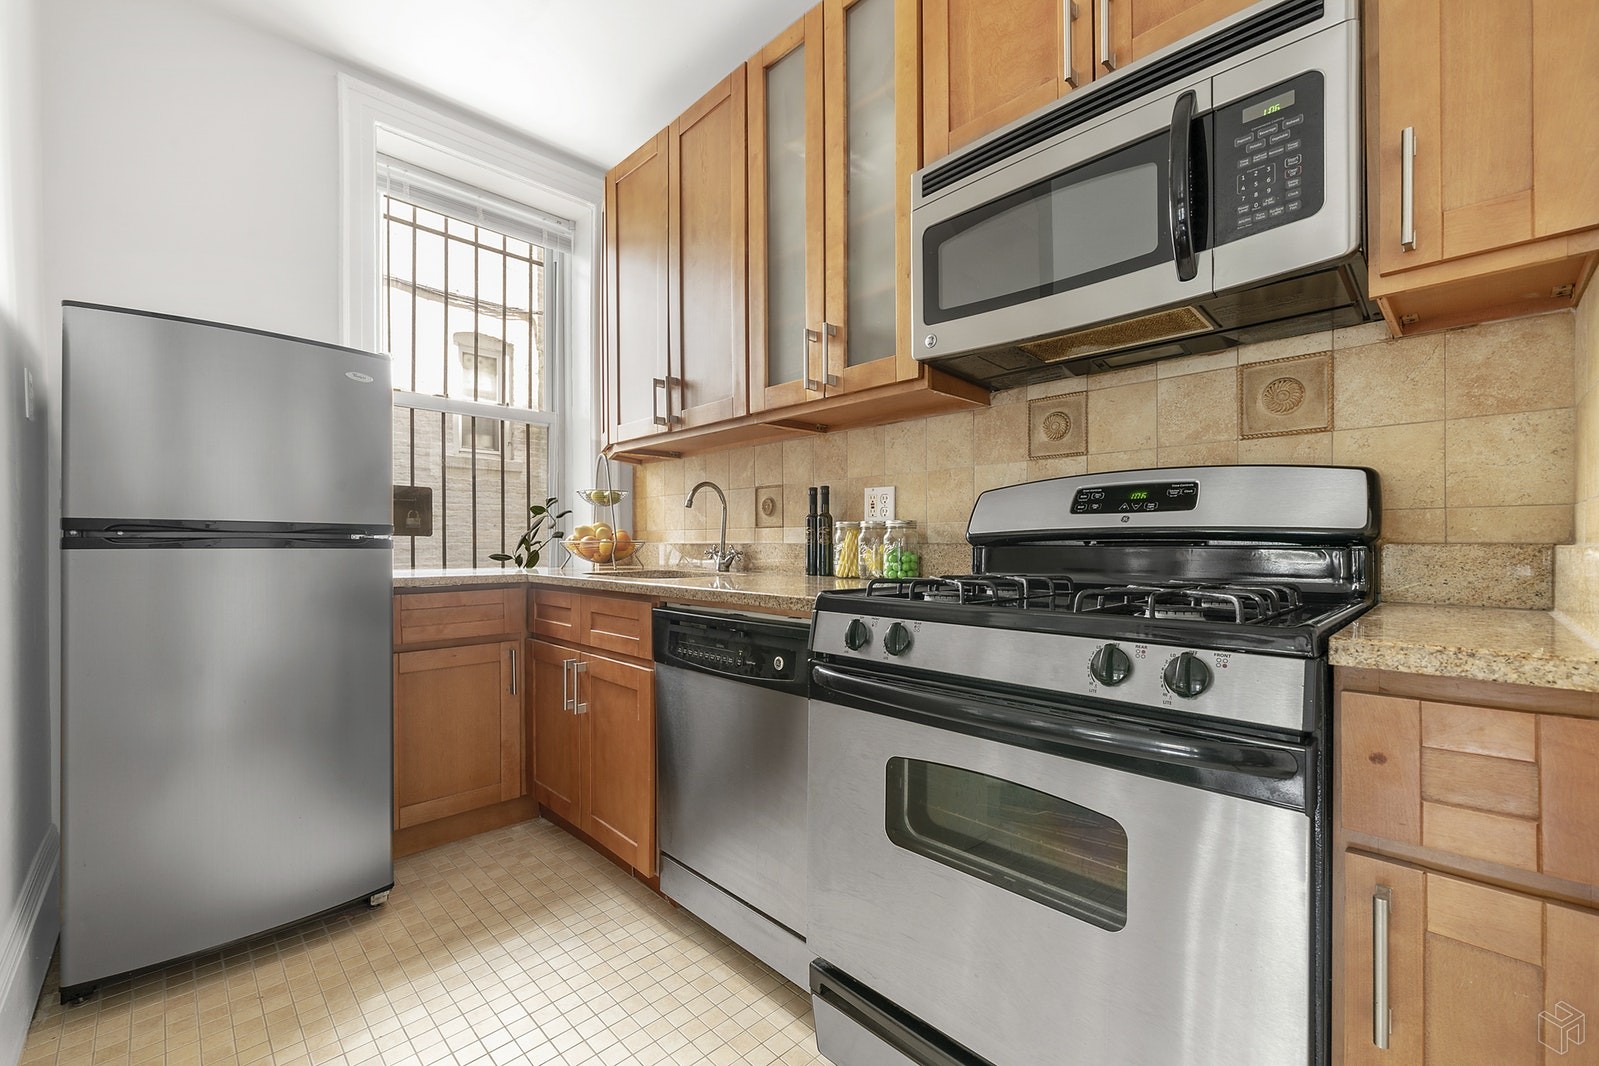 TWO BEDROOM SUNSET PARK!, Sunset Park, $520,000, Web #: 18869218